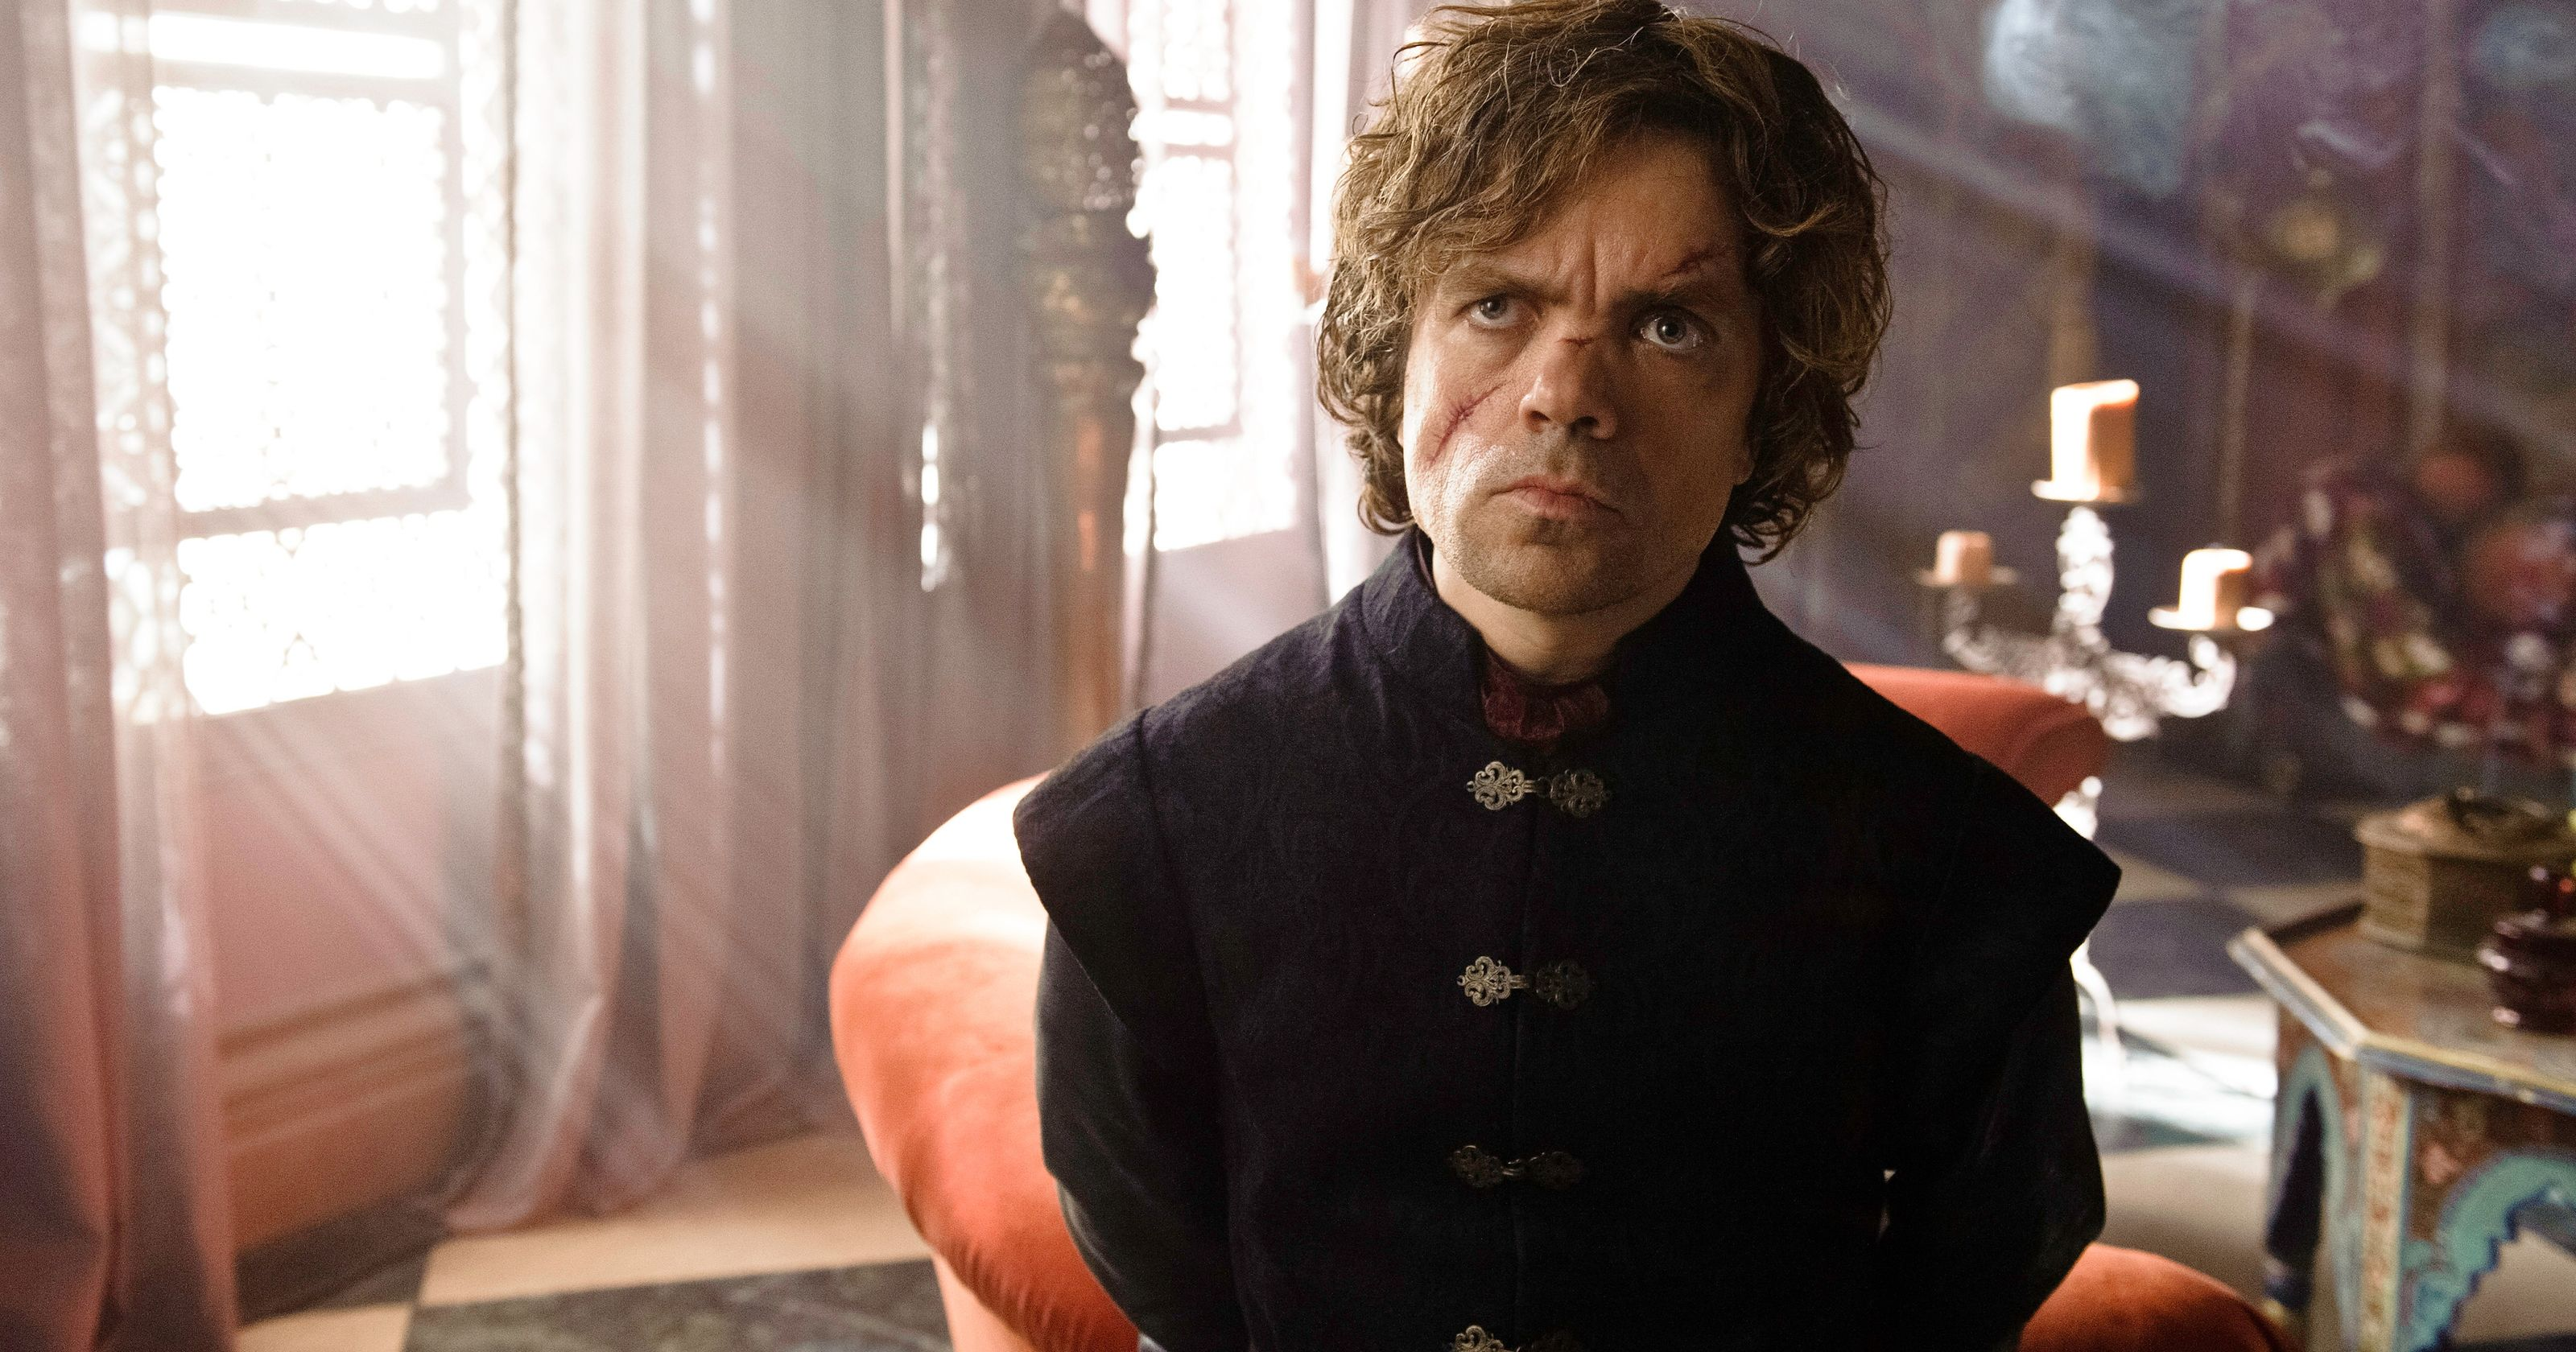 1396573498002-TYRION-LANNISTER-GAME-THRONES-TV-jy-6219